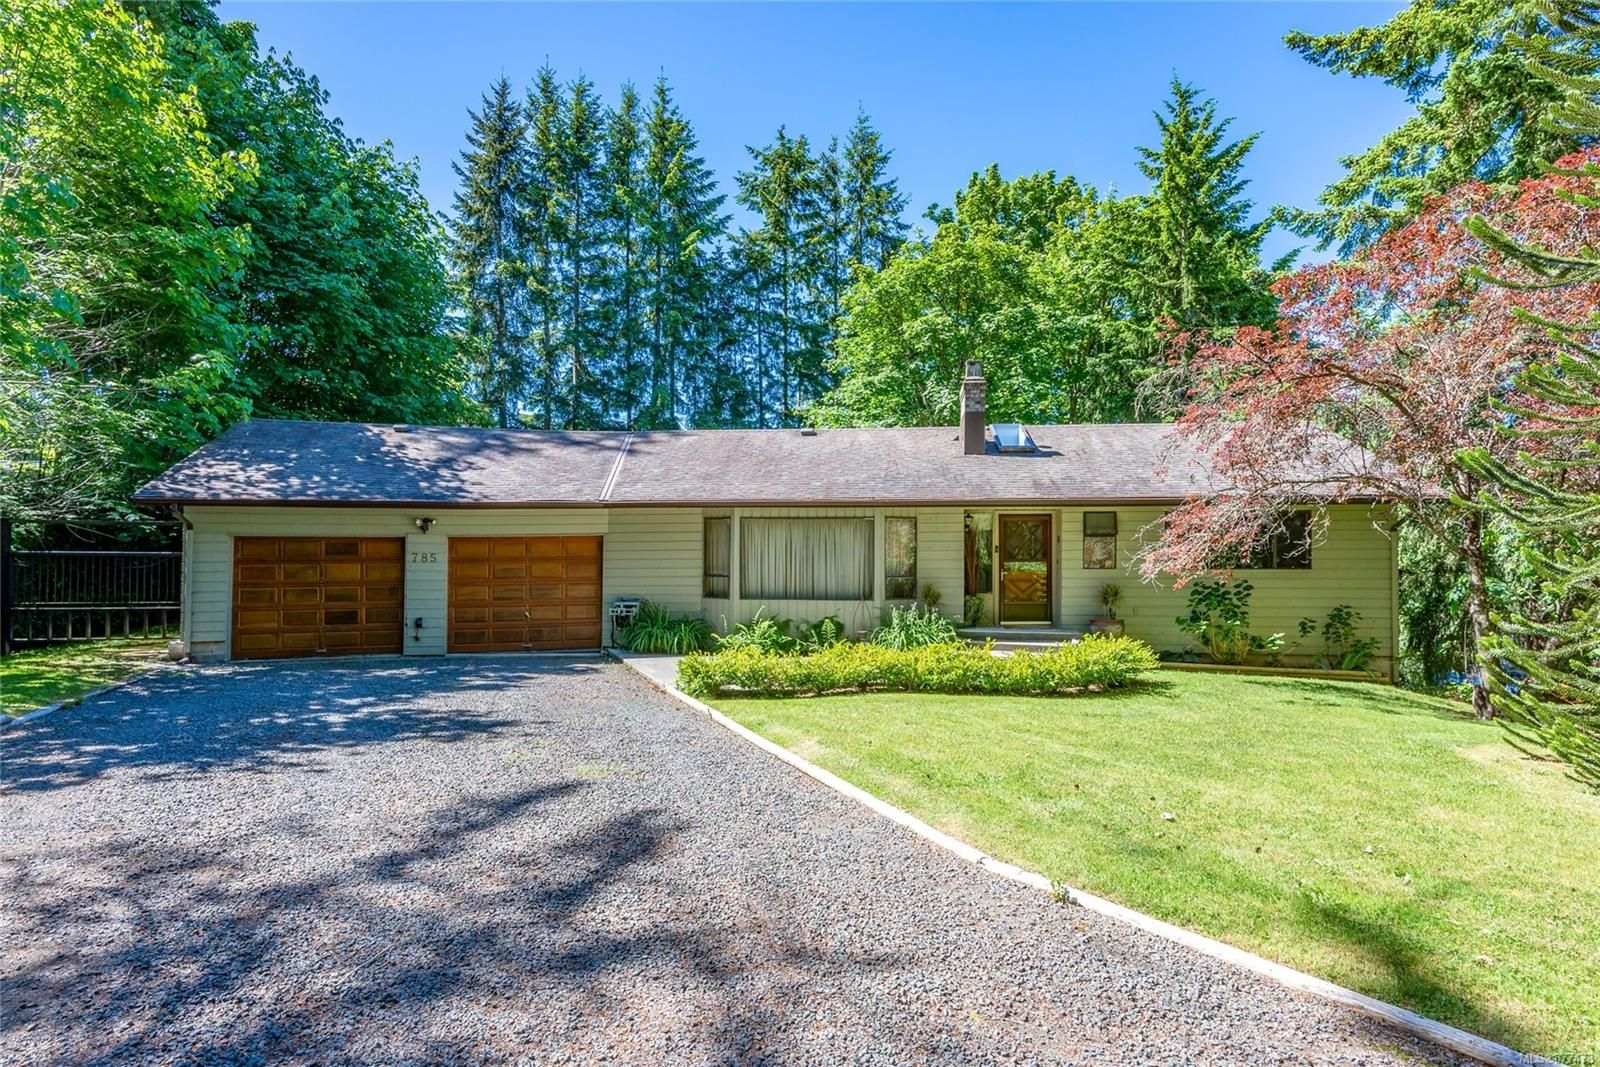 Main Photo: 785 Evergreen Rd in : CR Campbell River Central House for sale (Campbell River)  : MLS®# 877473